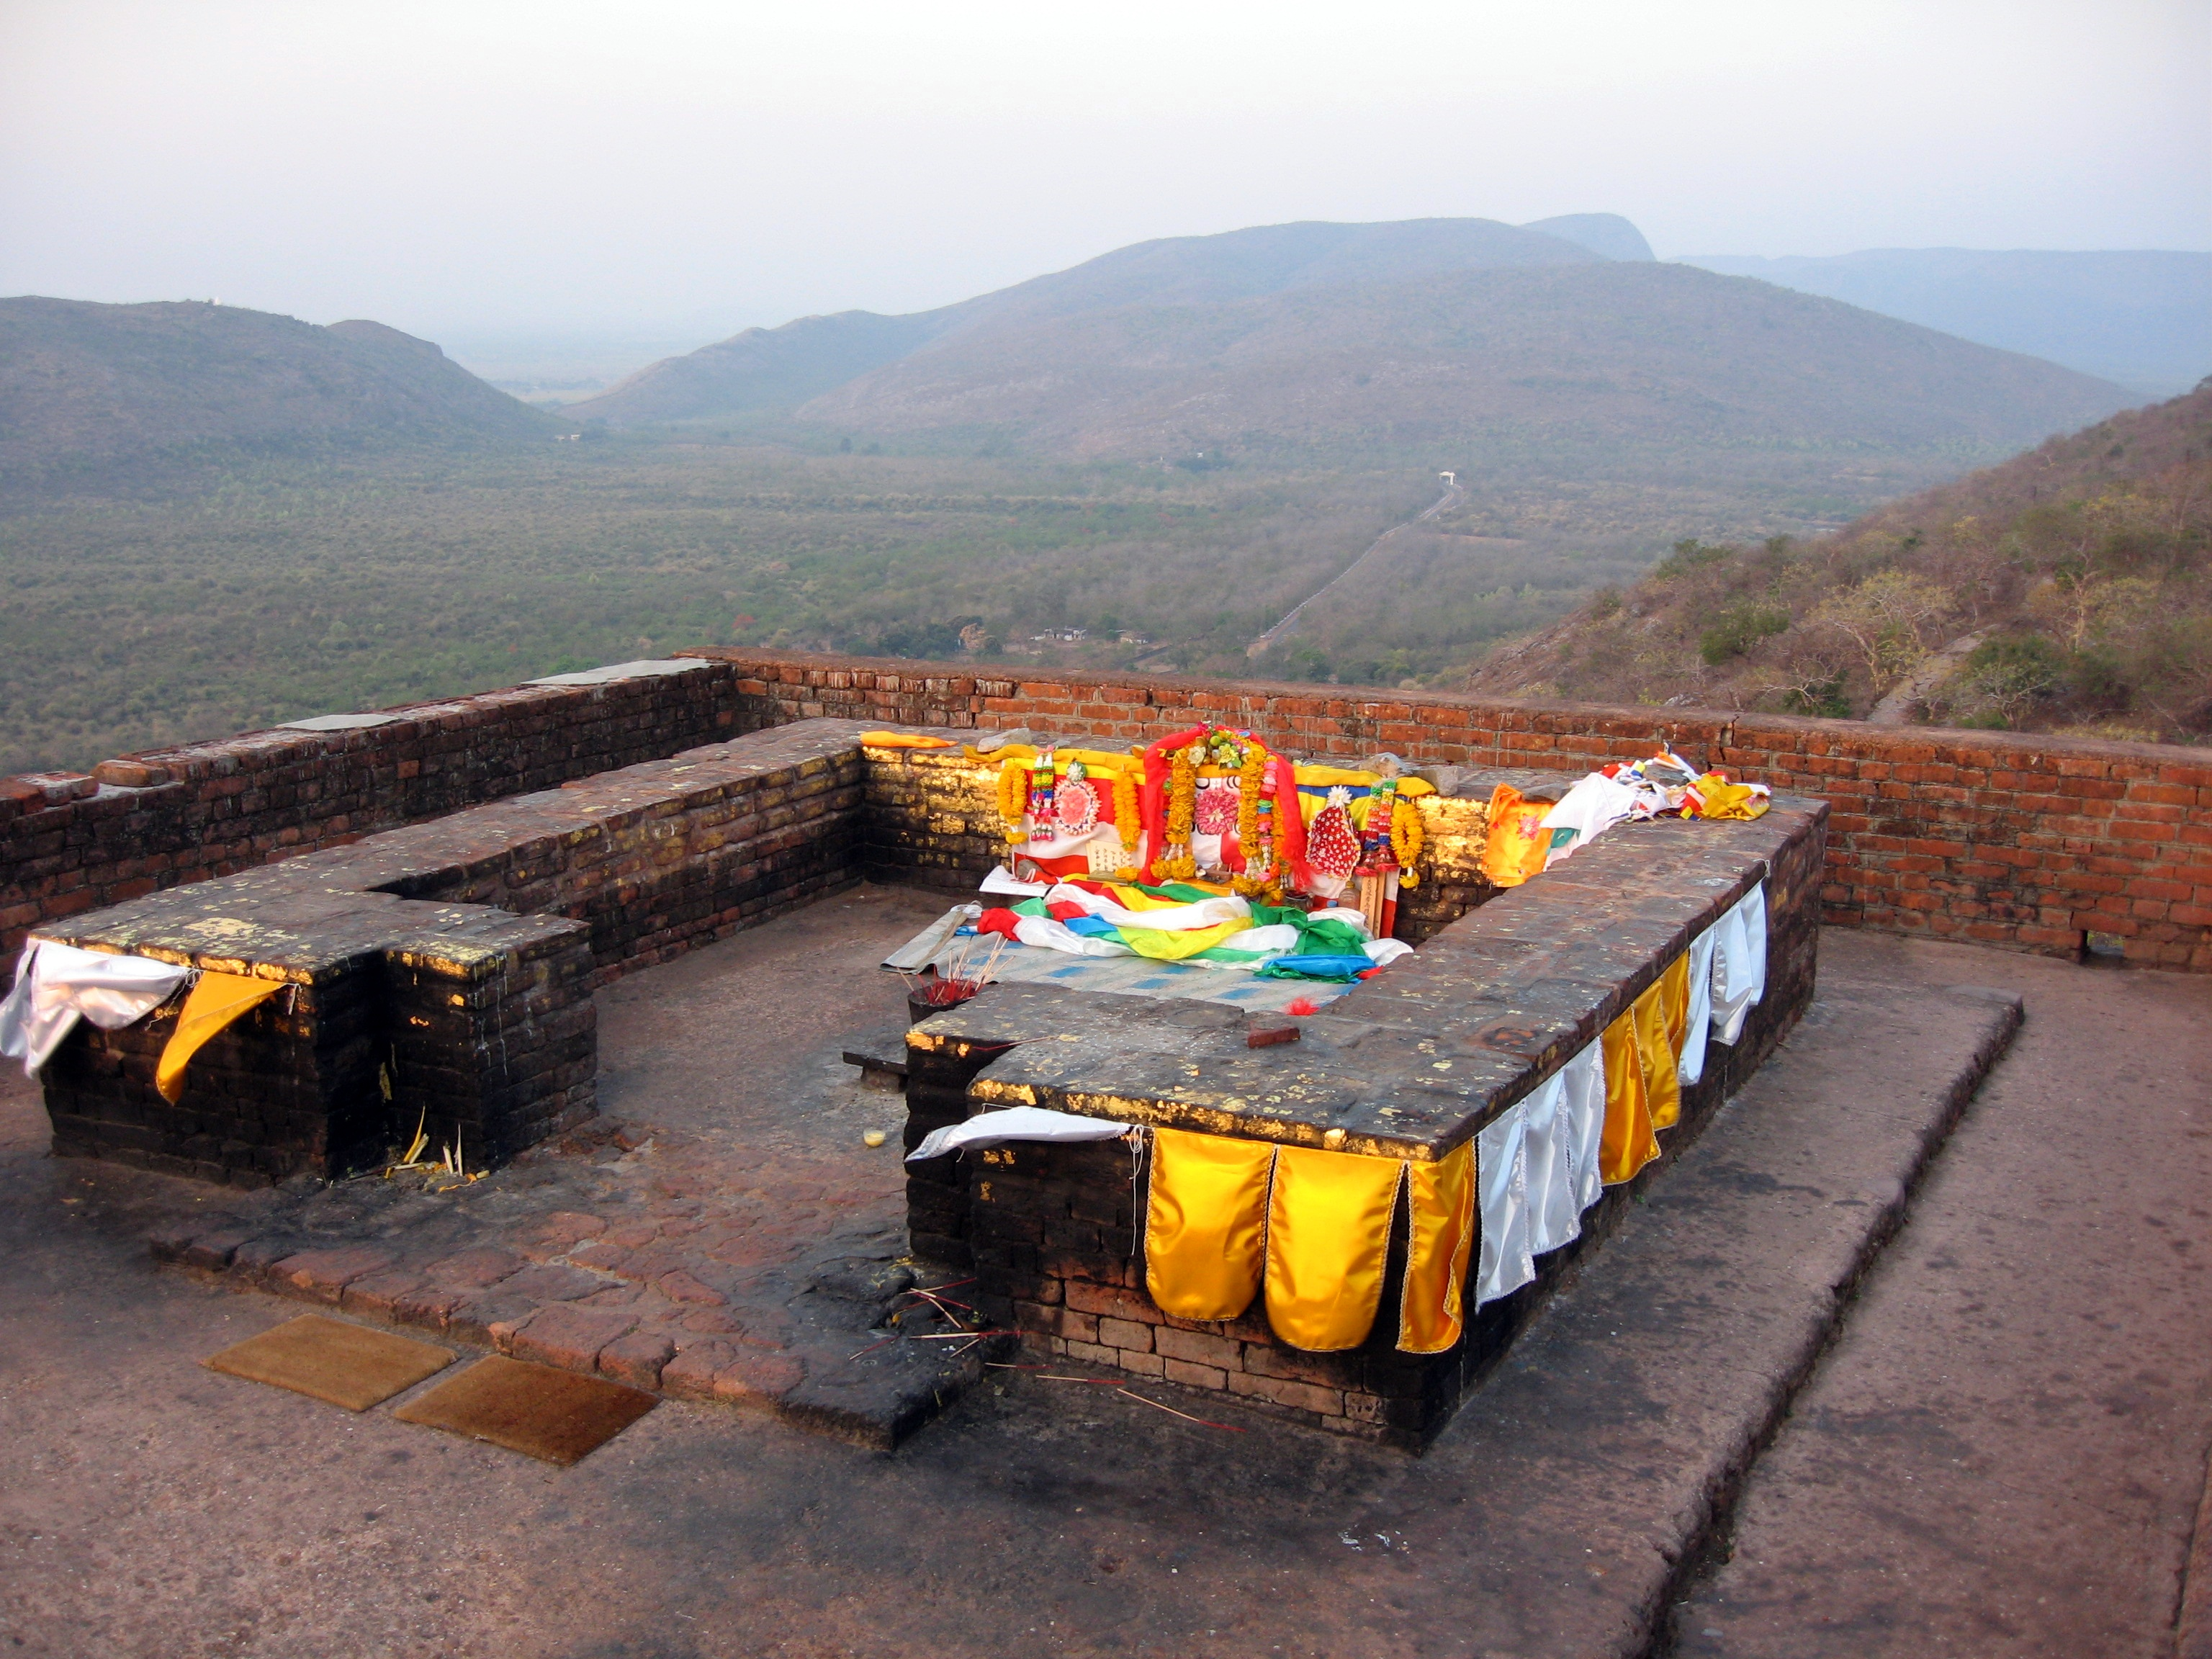 Budhha Shakyamuni's favorite spot on Gridhakuta Hill (Vulture Peak) near Rajgir, Bihar, India